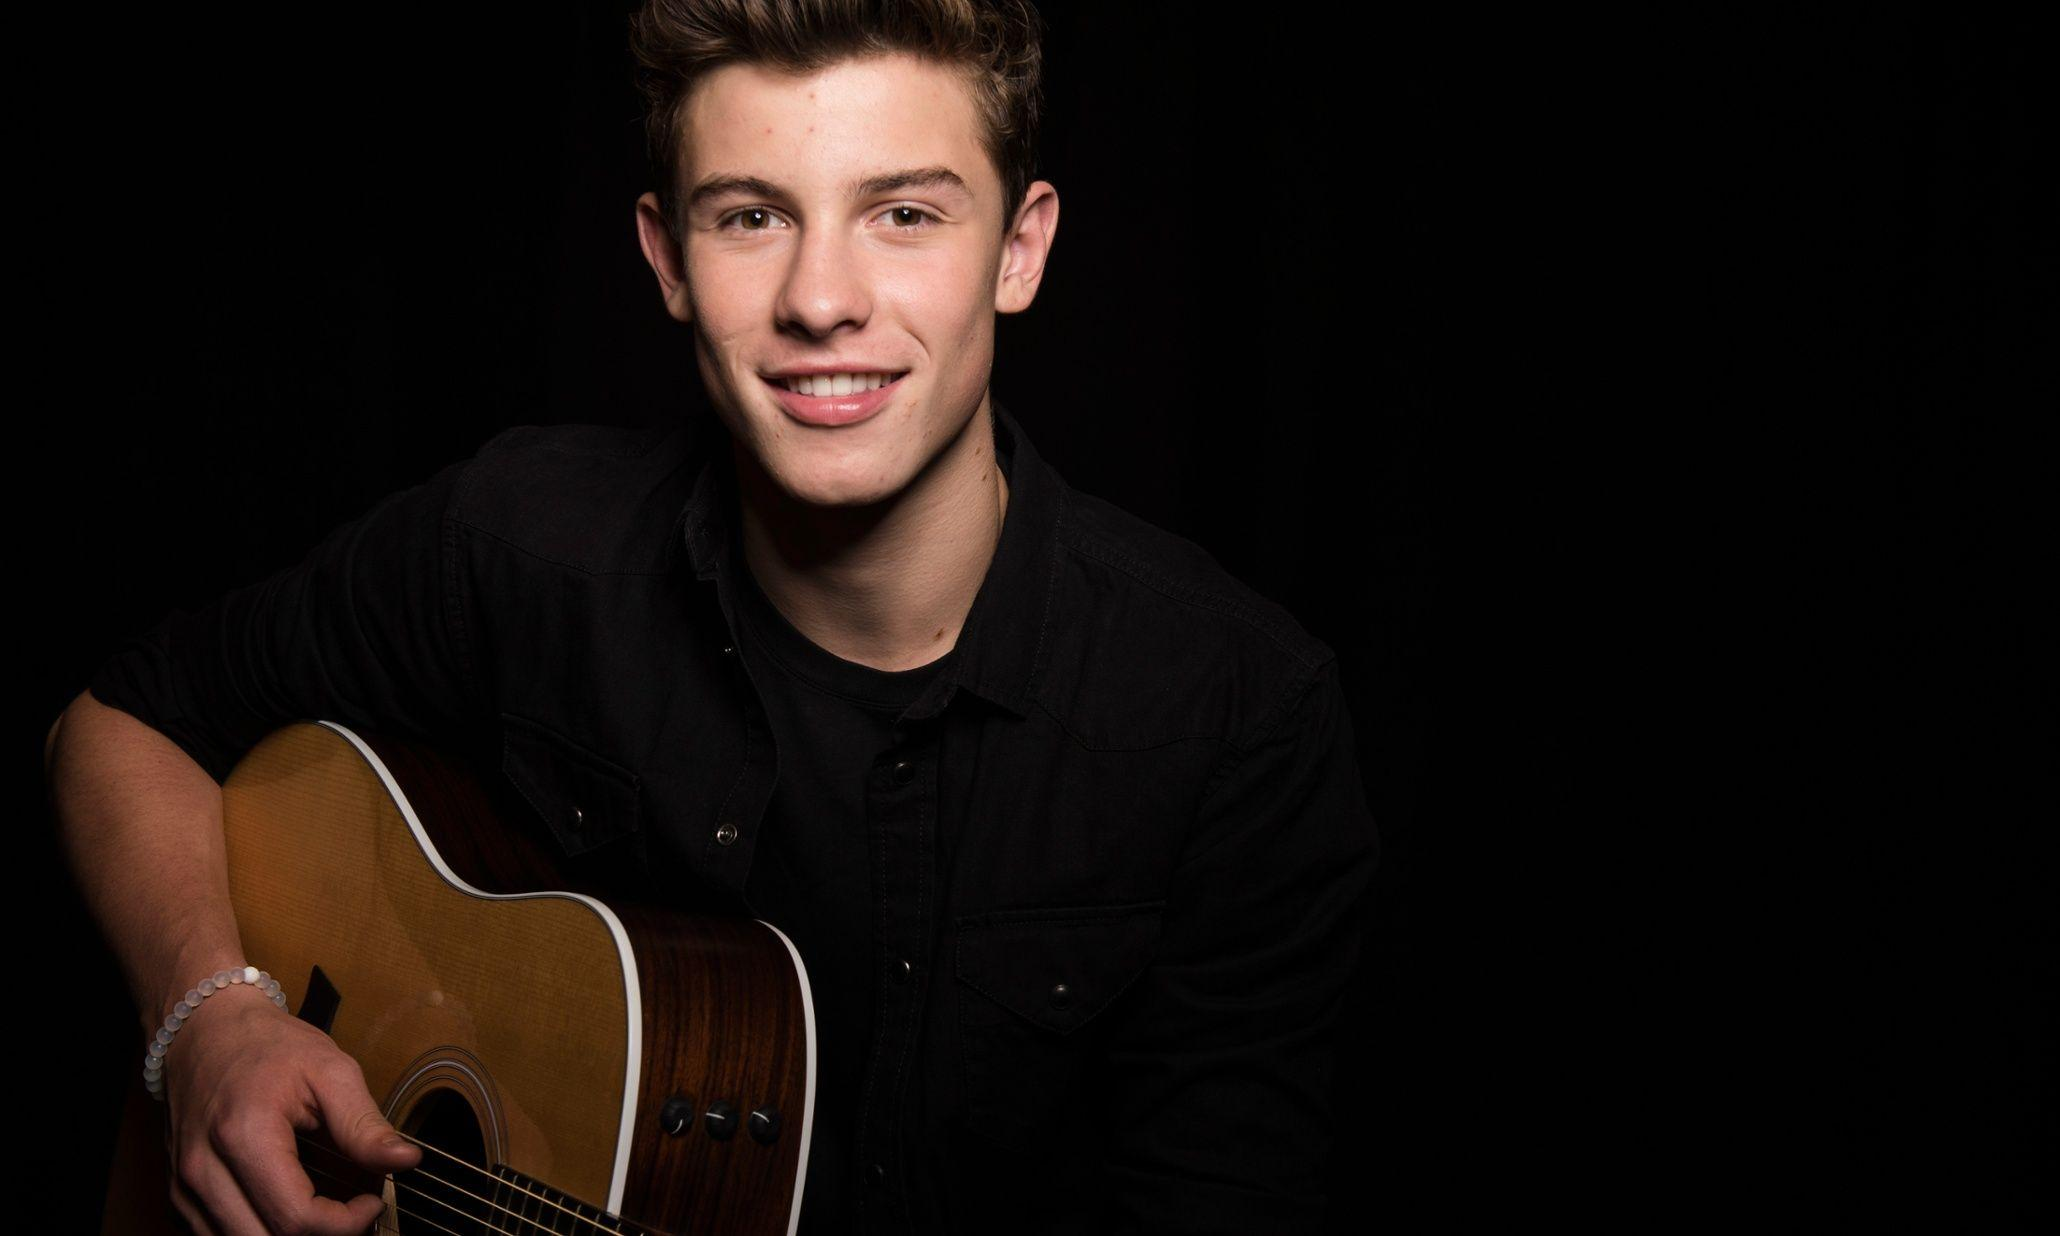 Shawn Mendes Wallpapers HD Backgrounds, Image, Pics, Photos Free